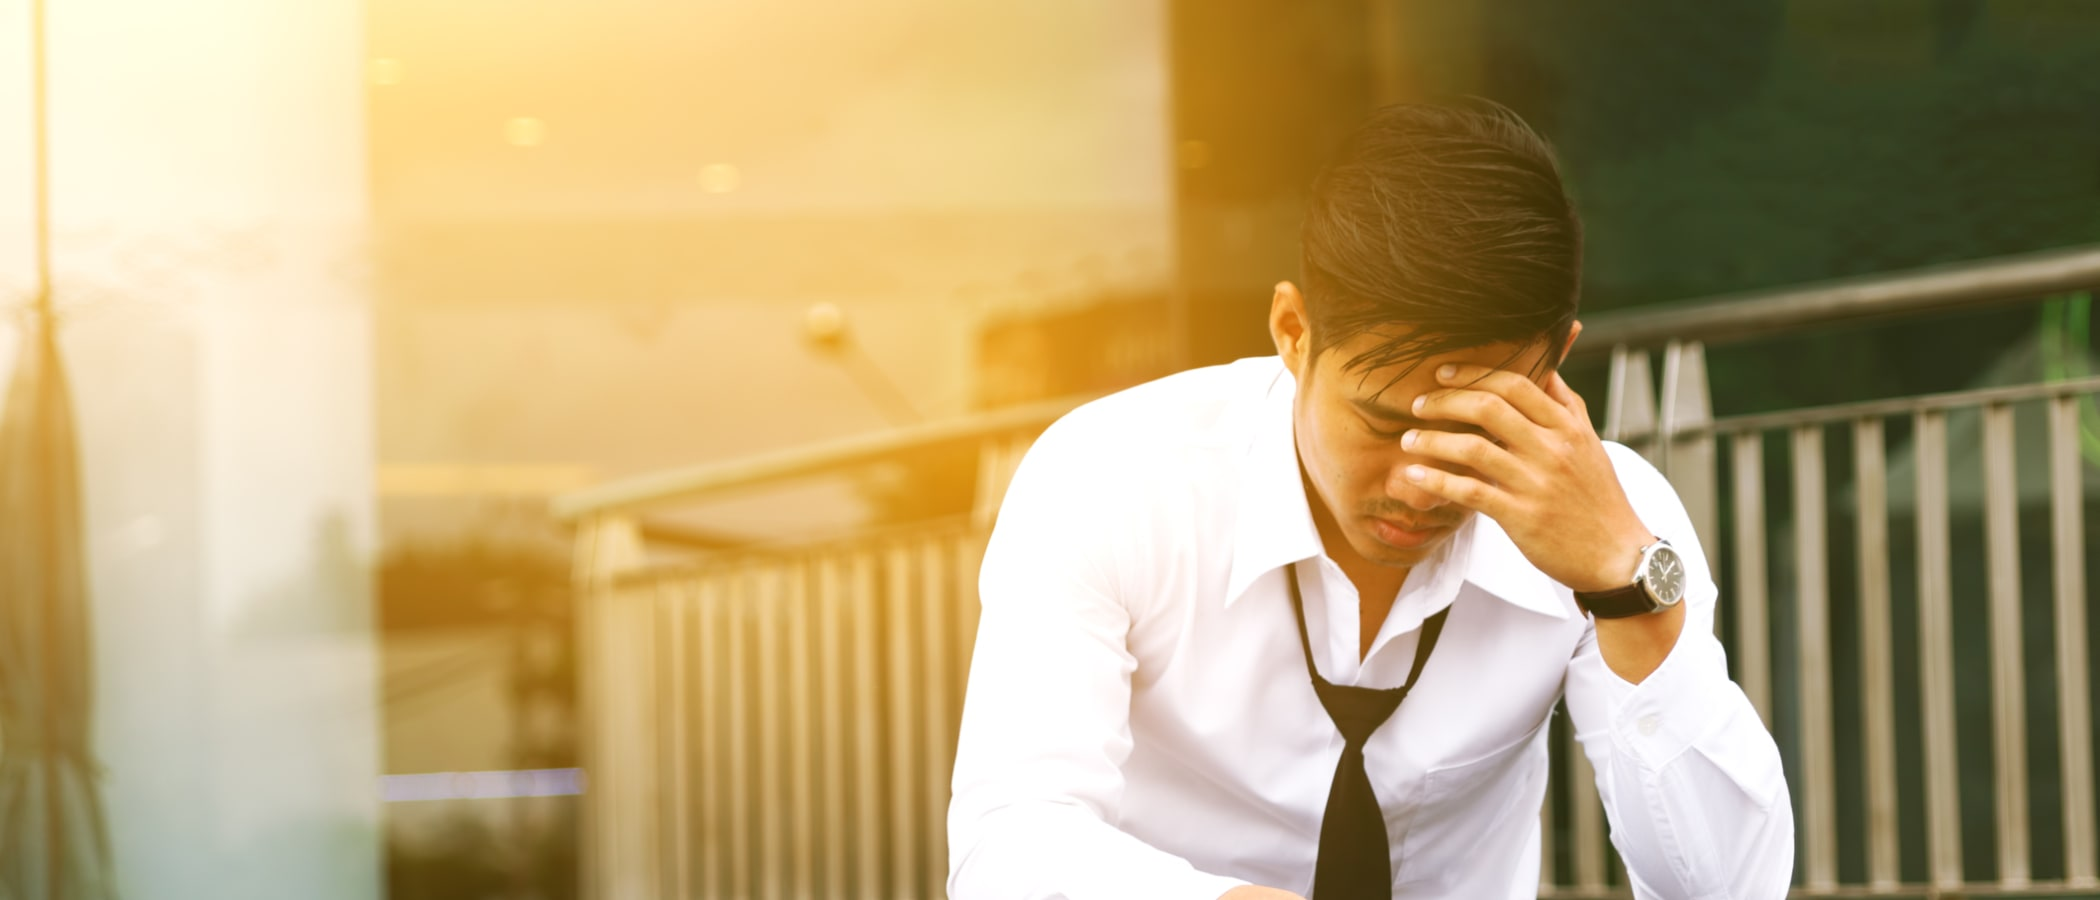 Effective Strategies for Working with Problem Employees